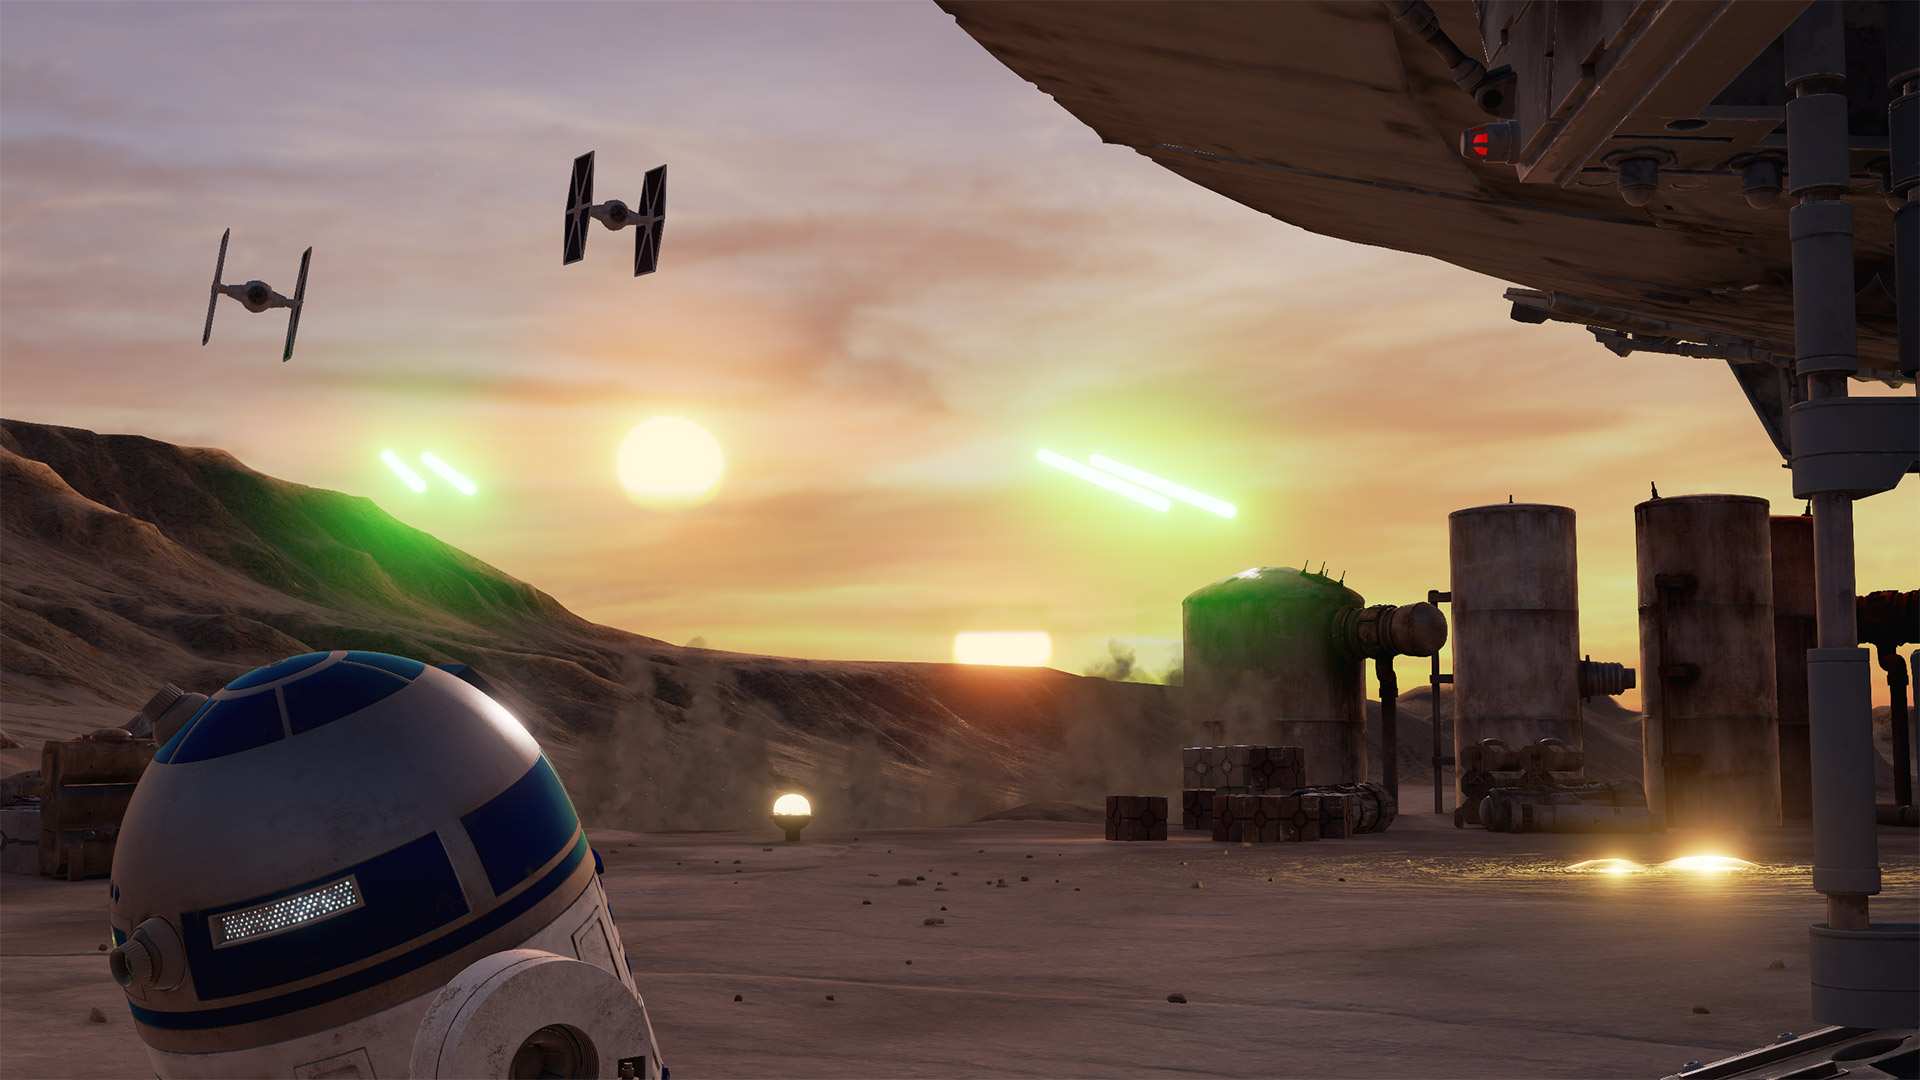 star-wars-trials-of-tatooine-virtual-reality-htc-vive-vr-tie-fighters-r2d2